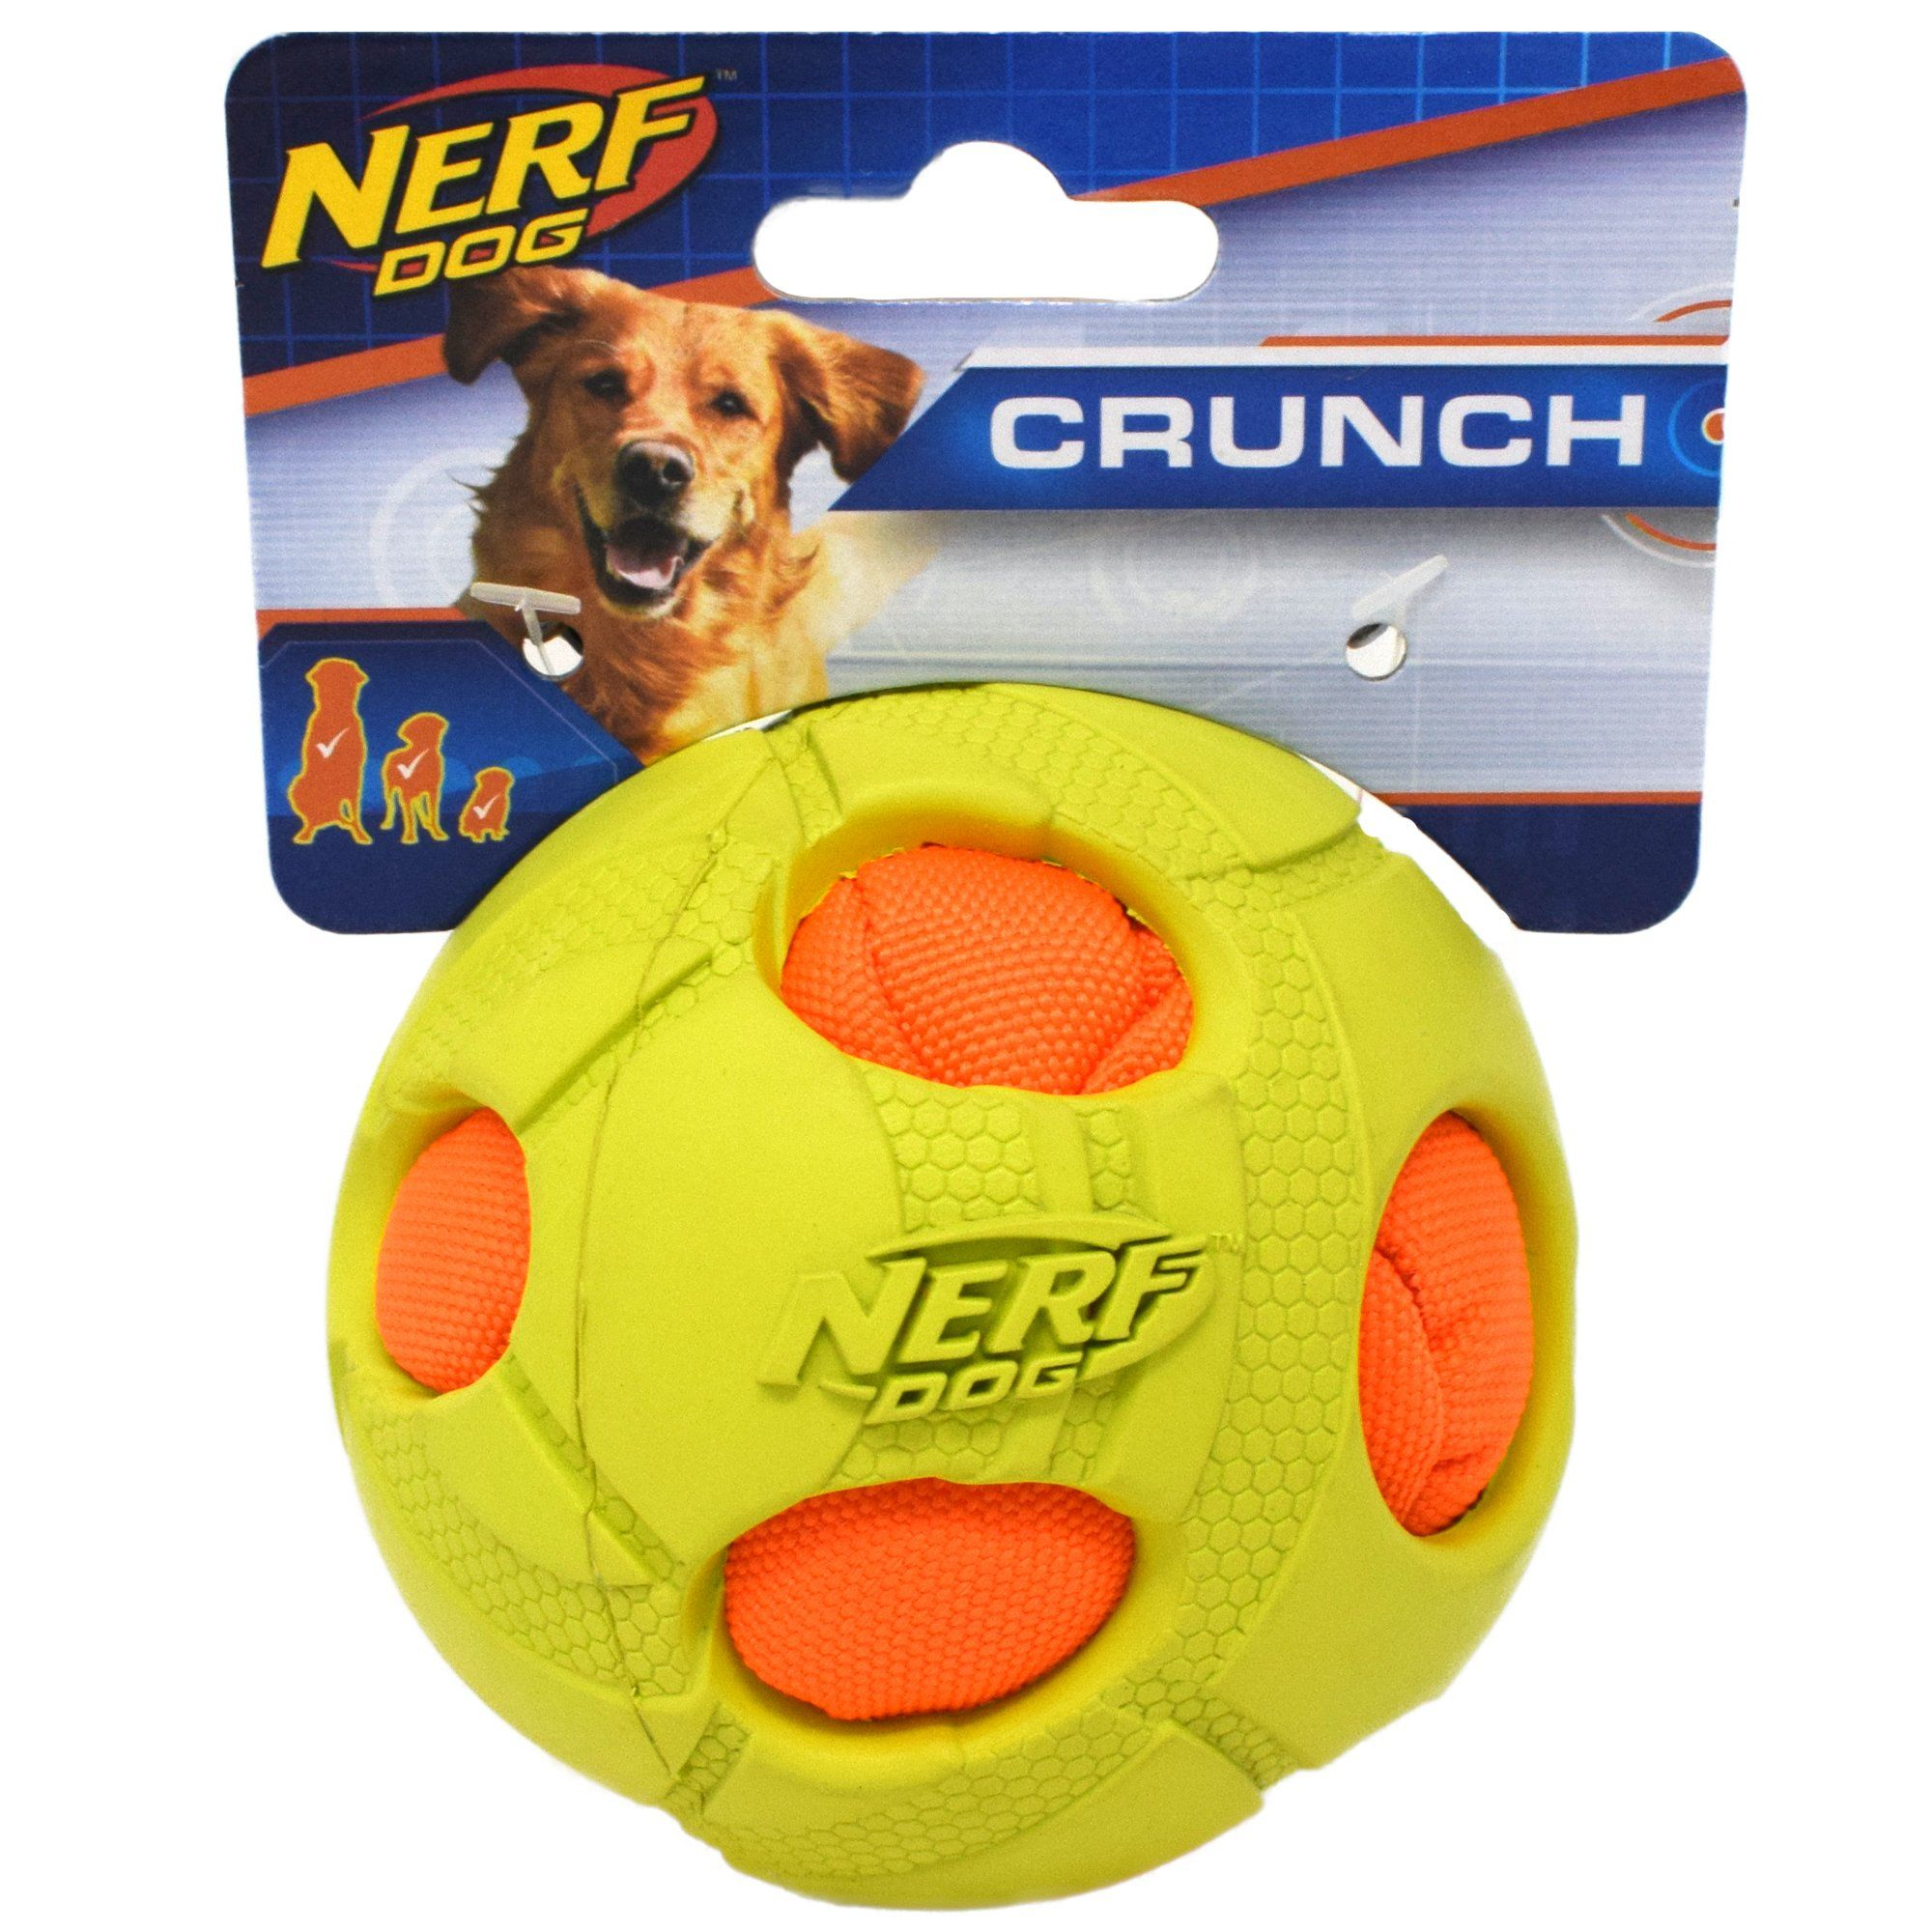 Interactive Dog Toys Nerf Green Bash Crunch Ball Dog Toy, Small | Petco